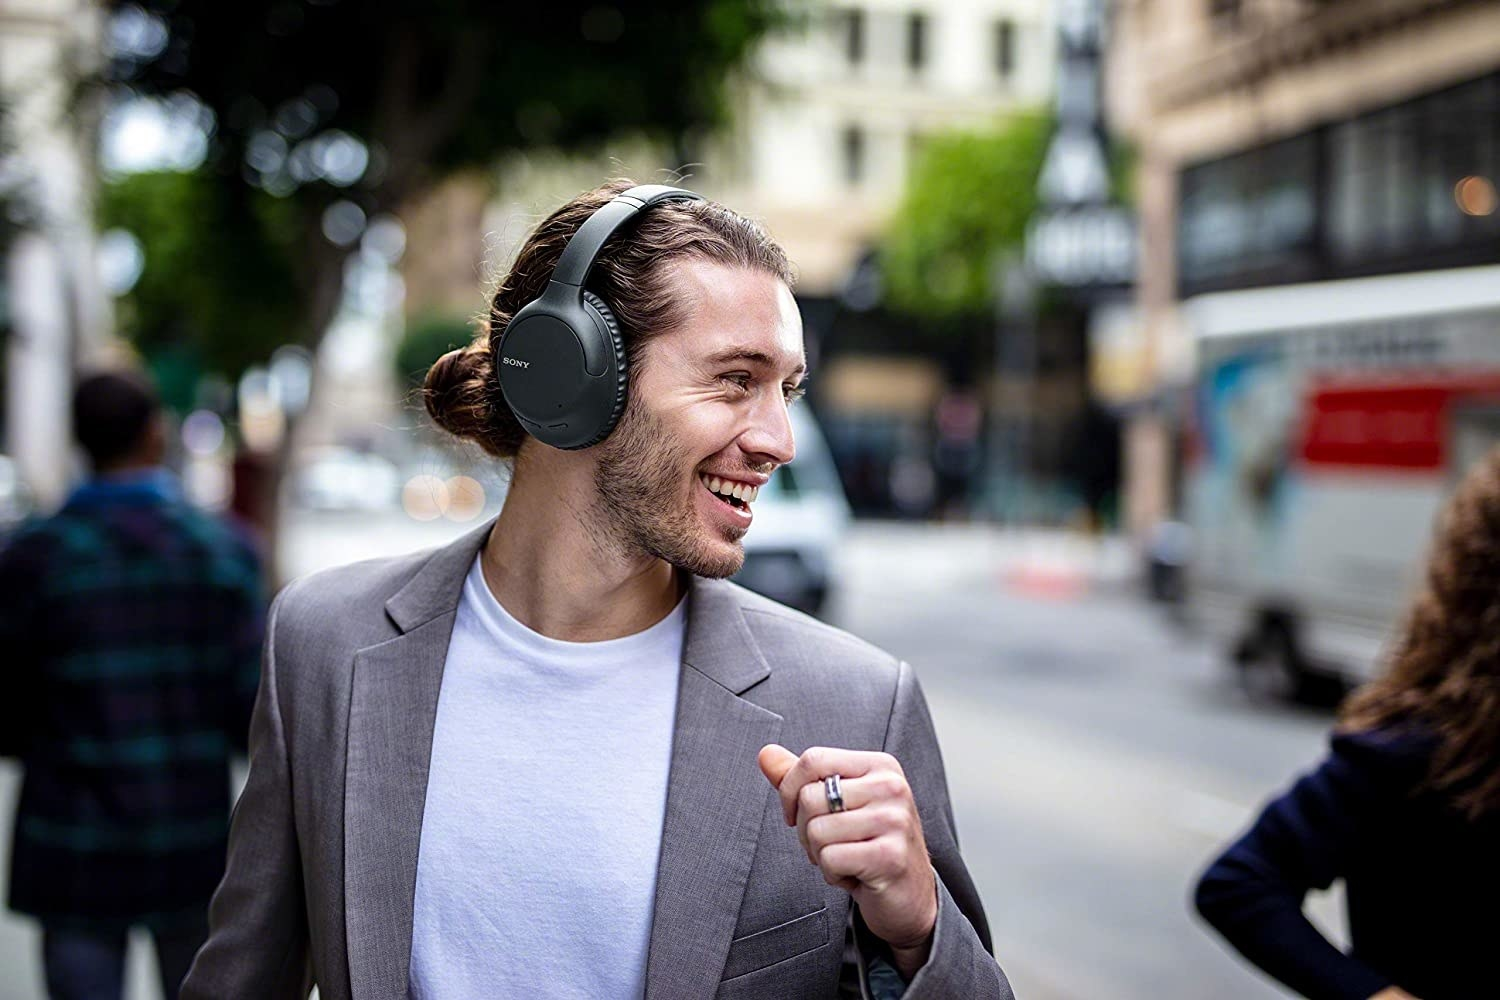 A person walking down the street with a pair of over-ear headphones on